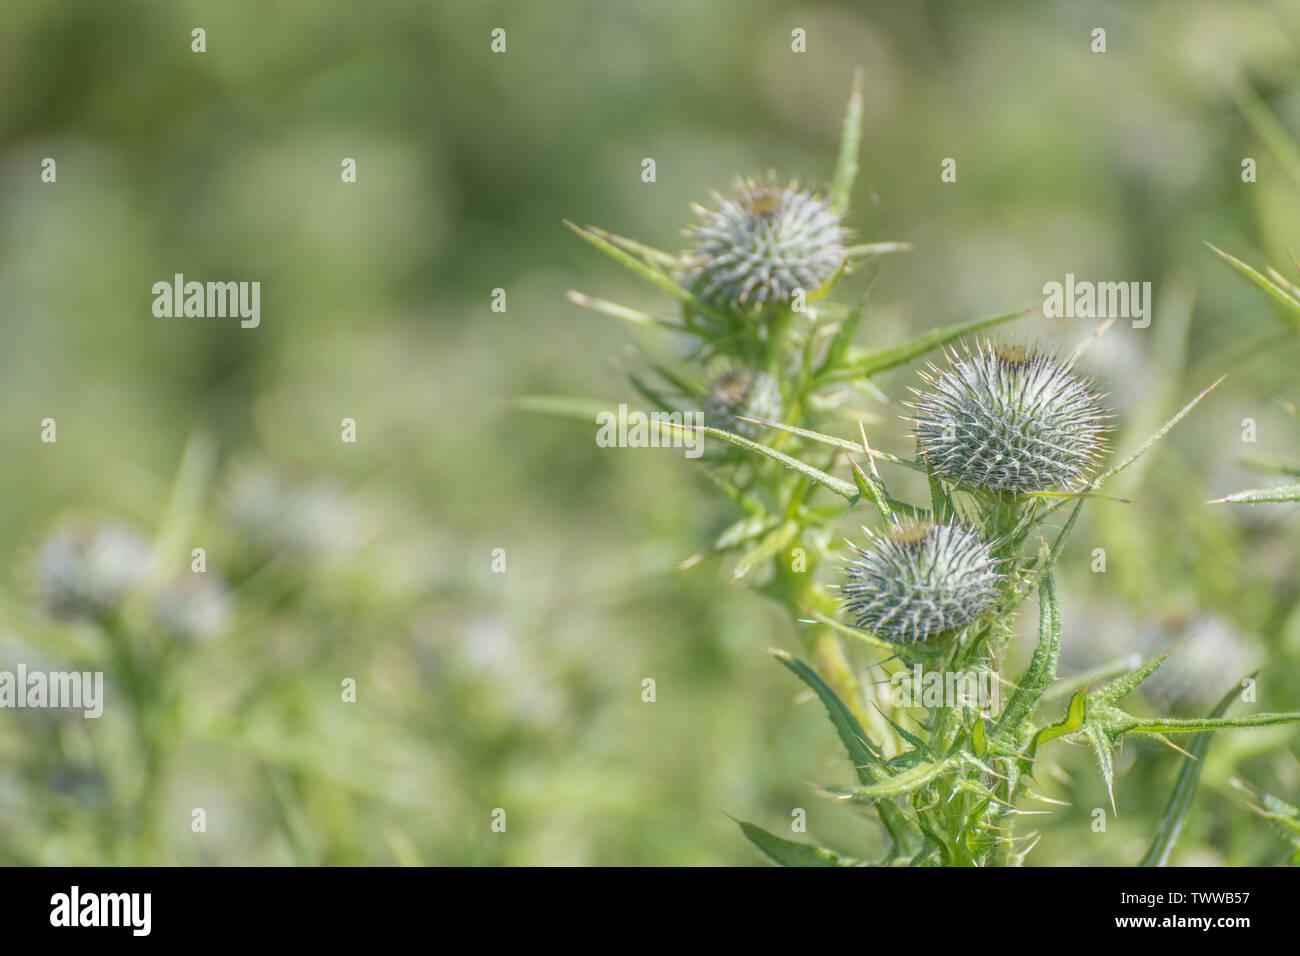 Flowerbud Stock Photos & Flowerbud Stock Images - Alamy